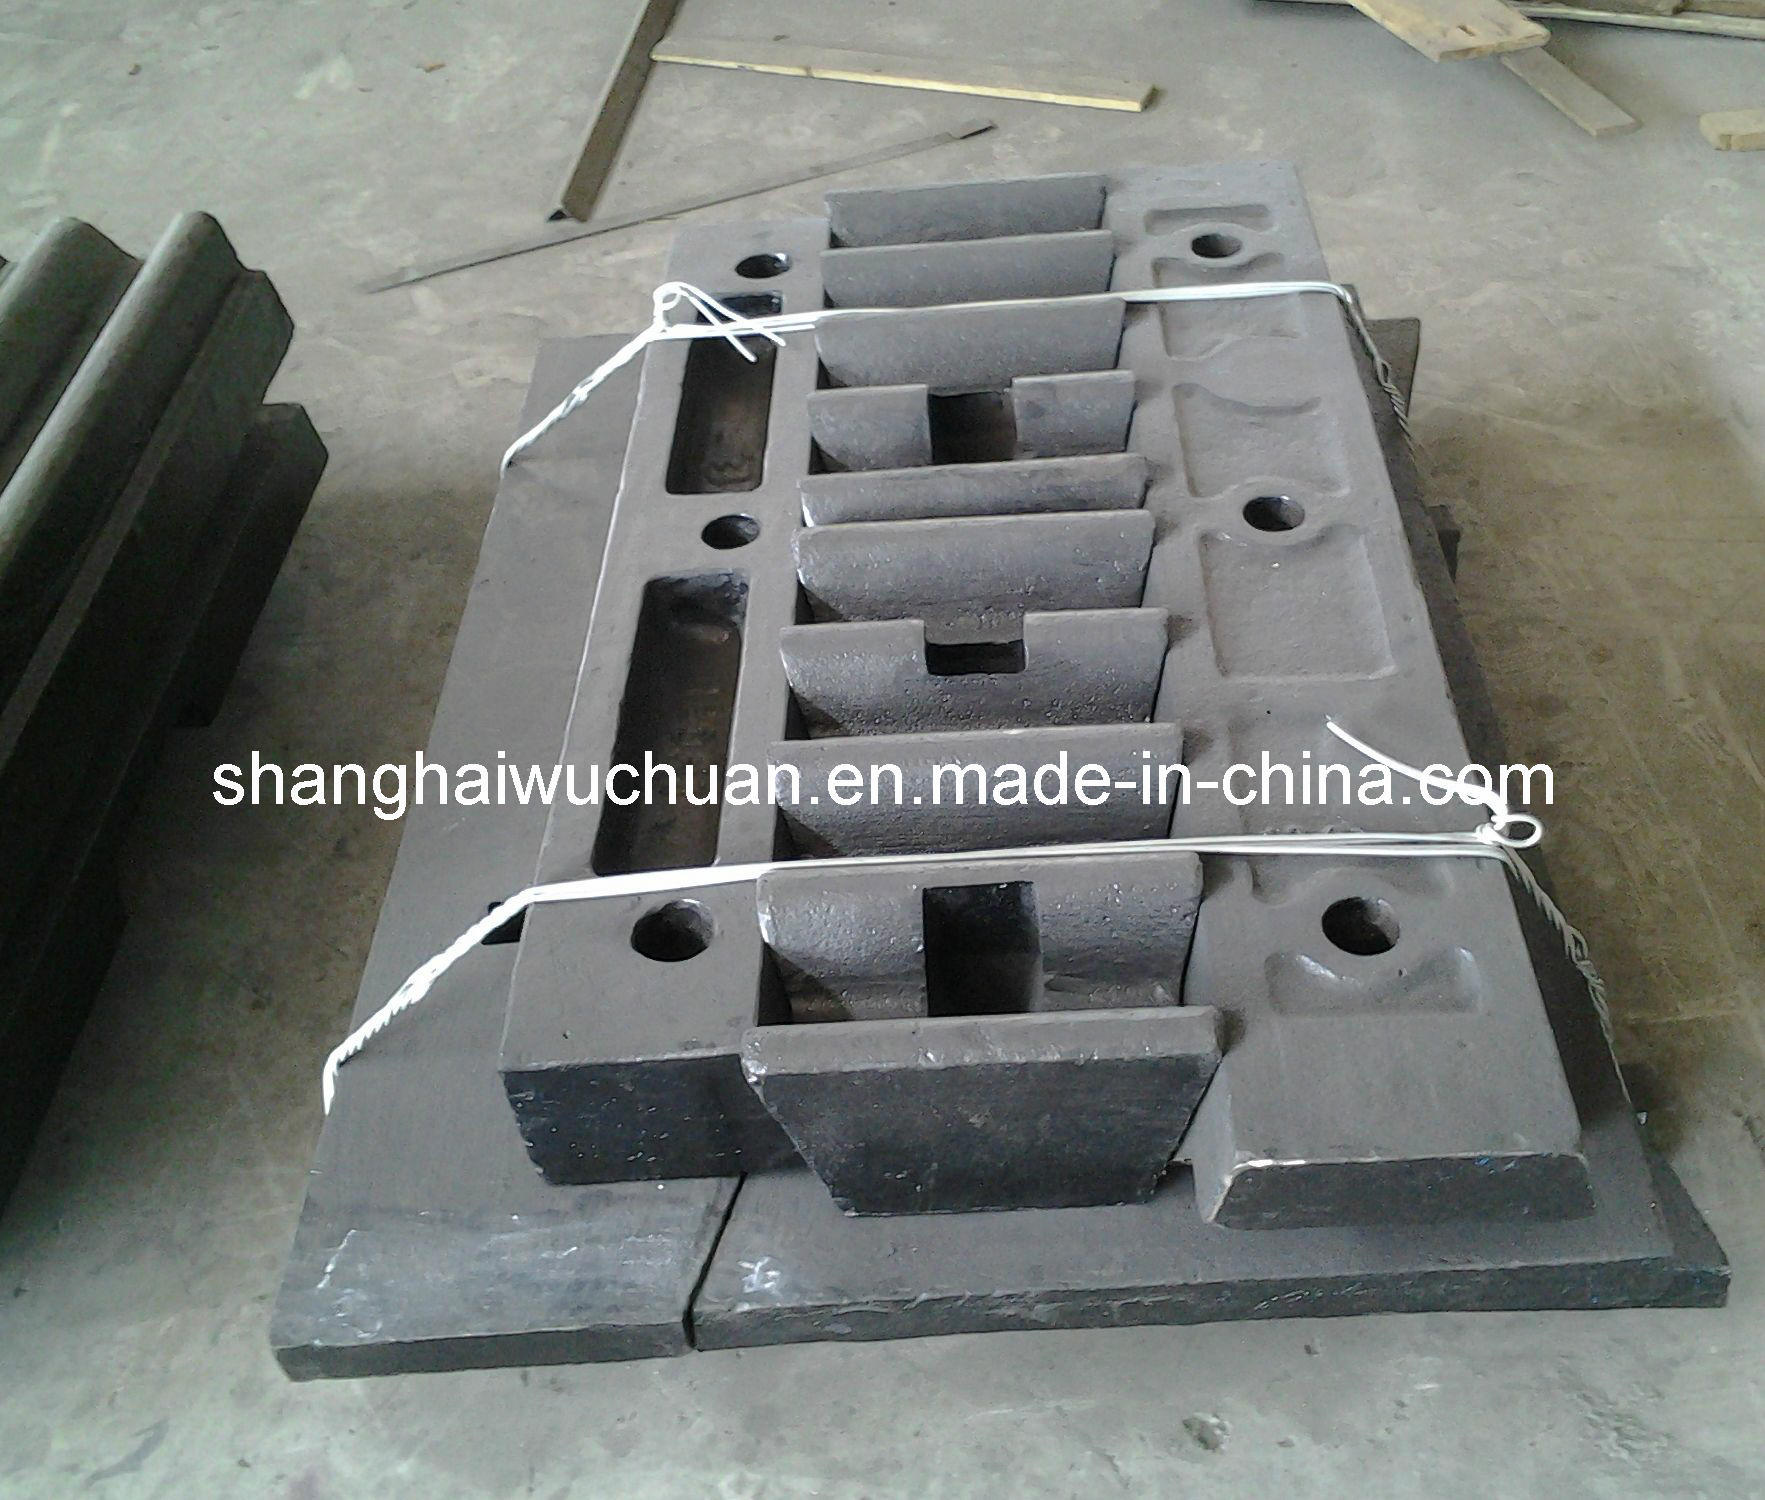 Manganese Jaw Parts for Jaw Crusher